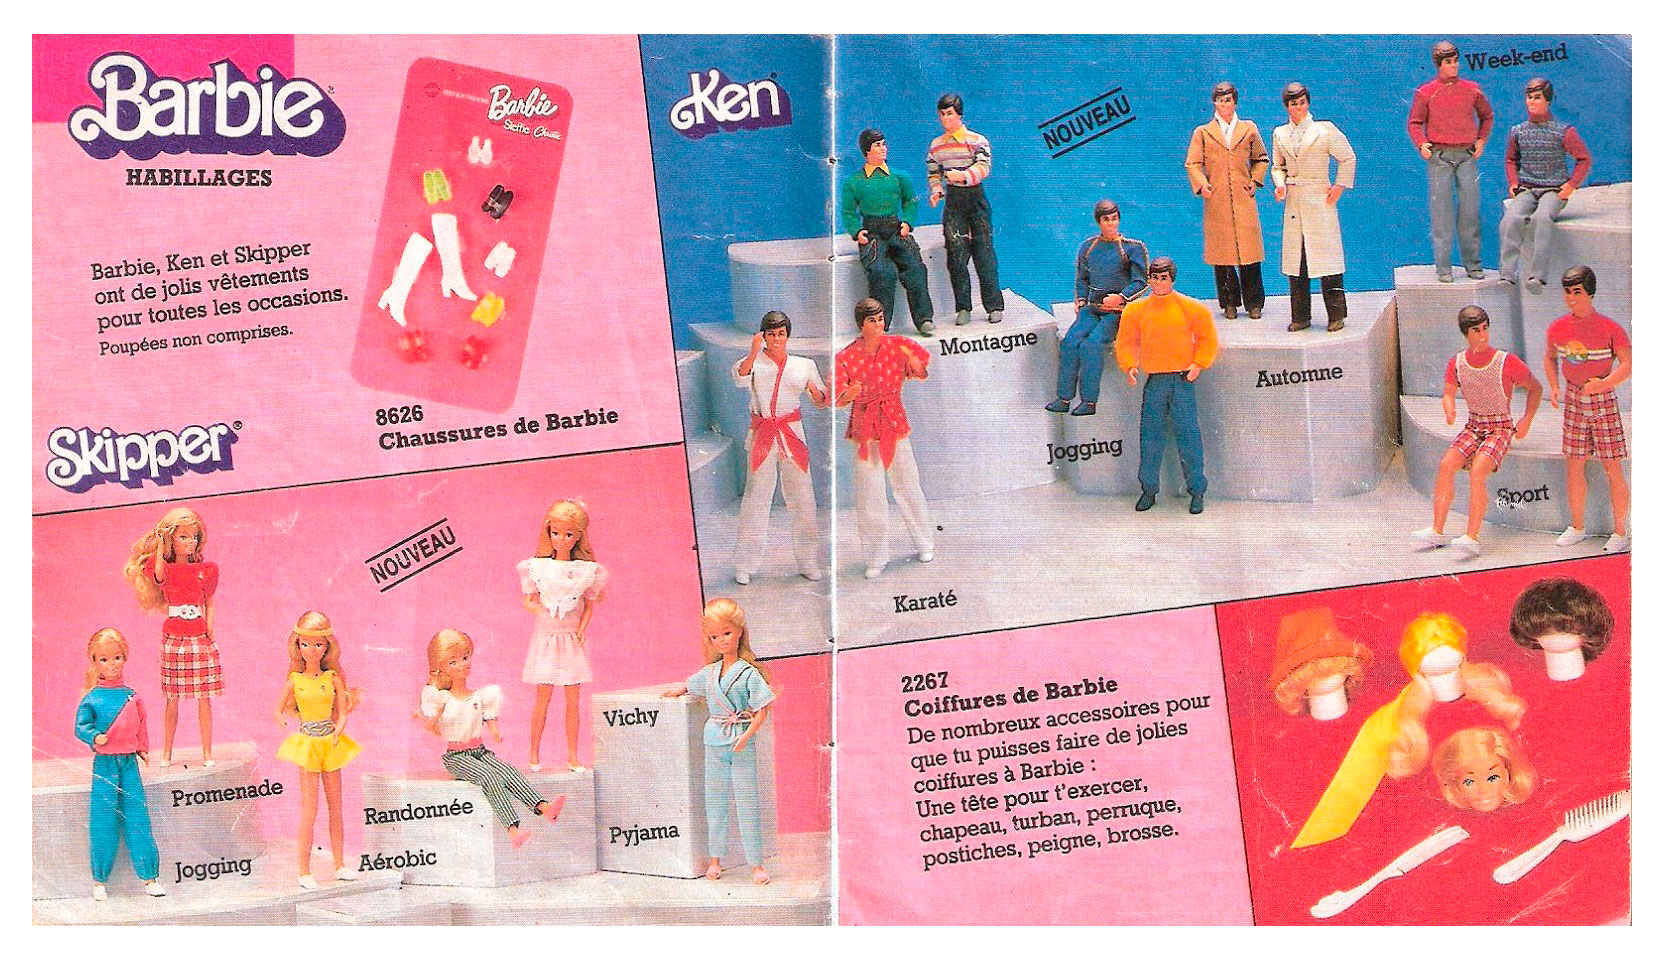 From 1986 French Barbie booklet